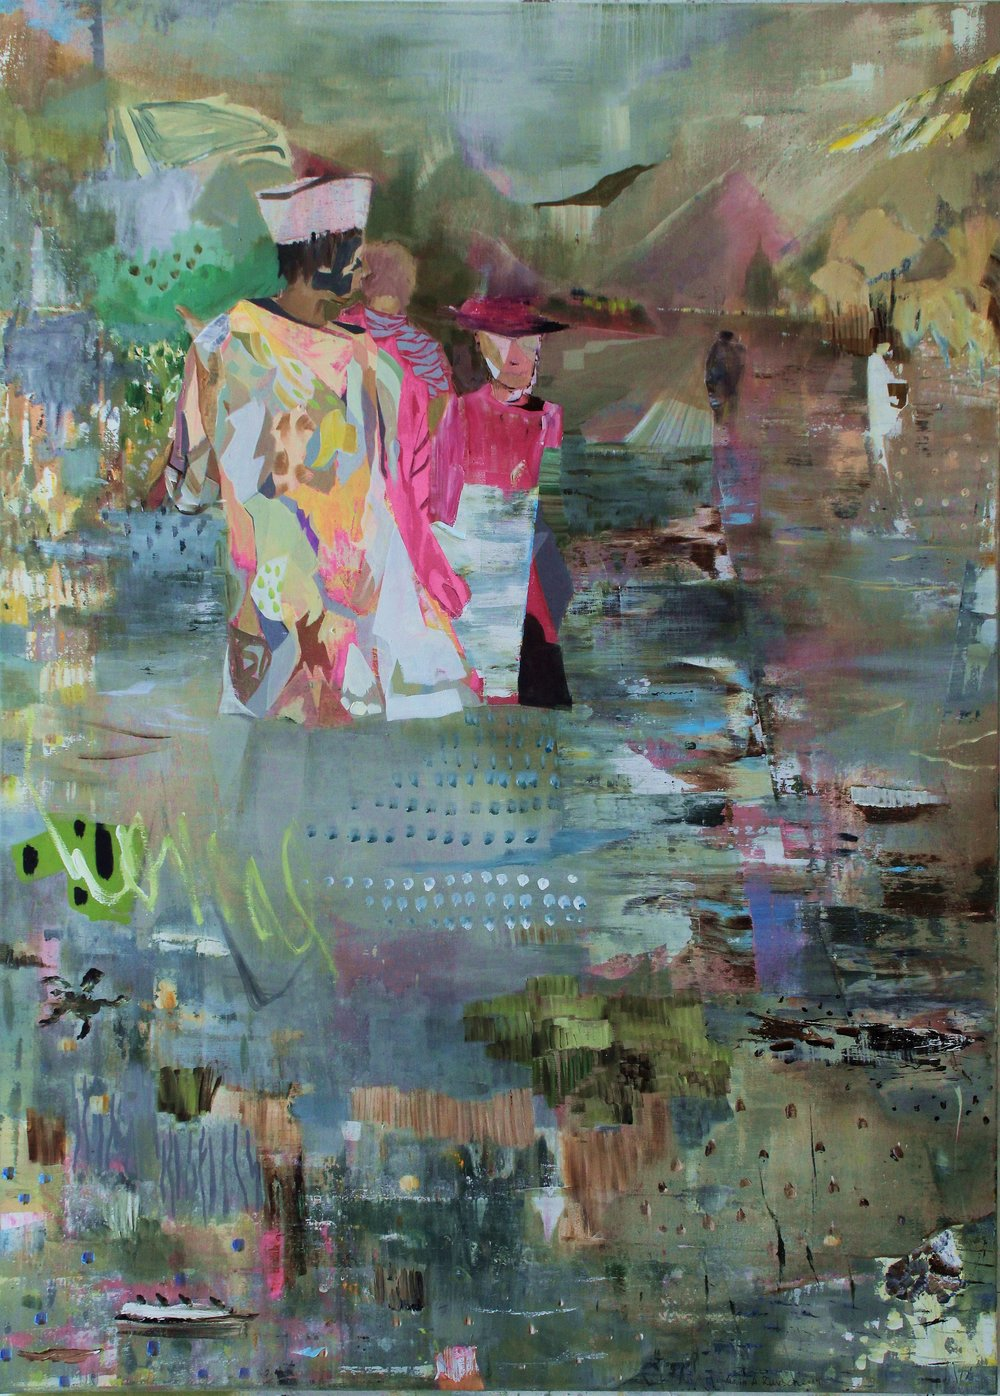 others are coming in, mixed media, 180x130cm